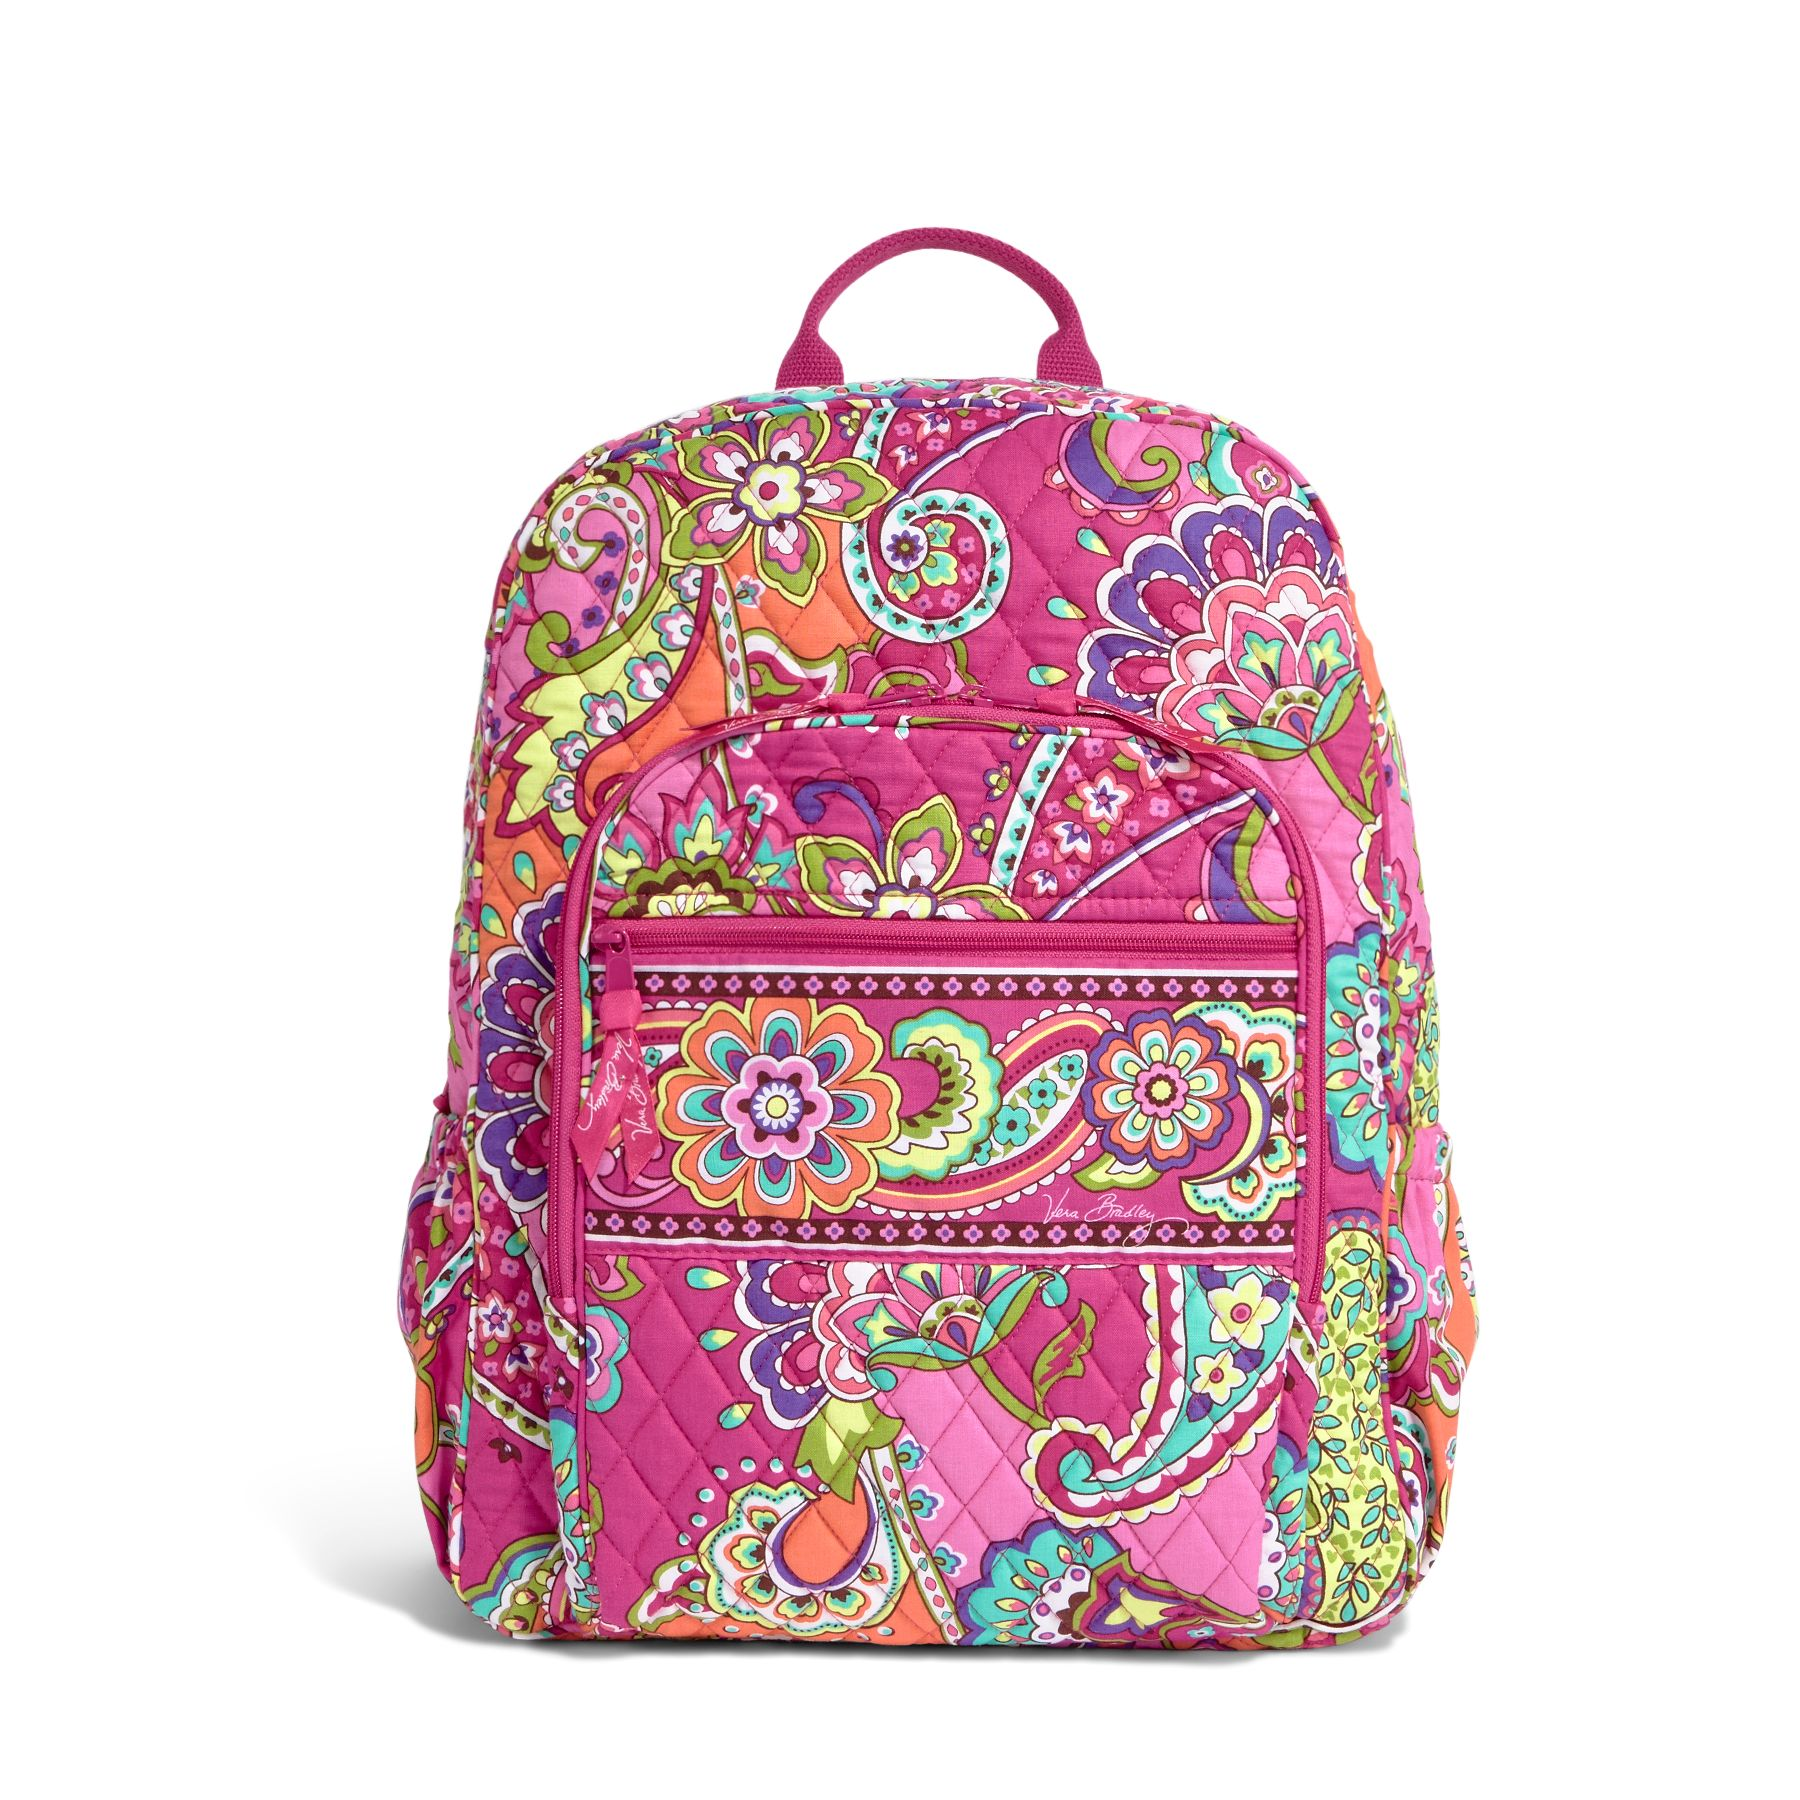 Vera Bradley, Extra 20% off of Sale Duffels and Backpacks